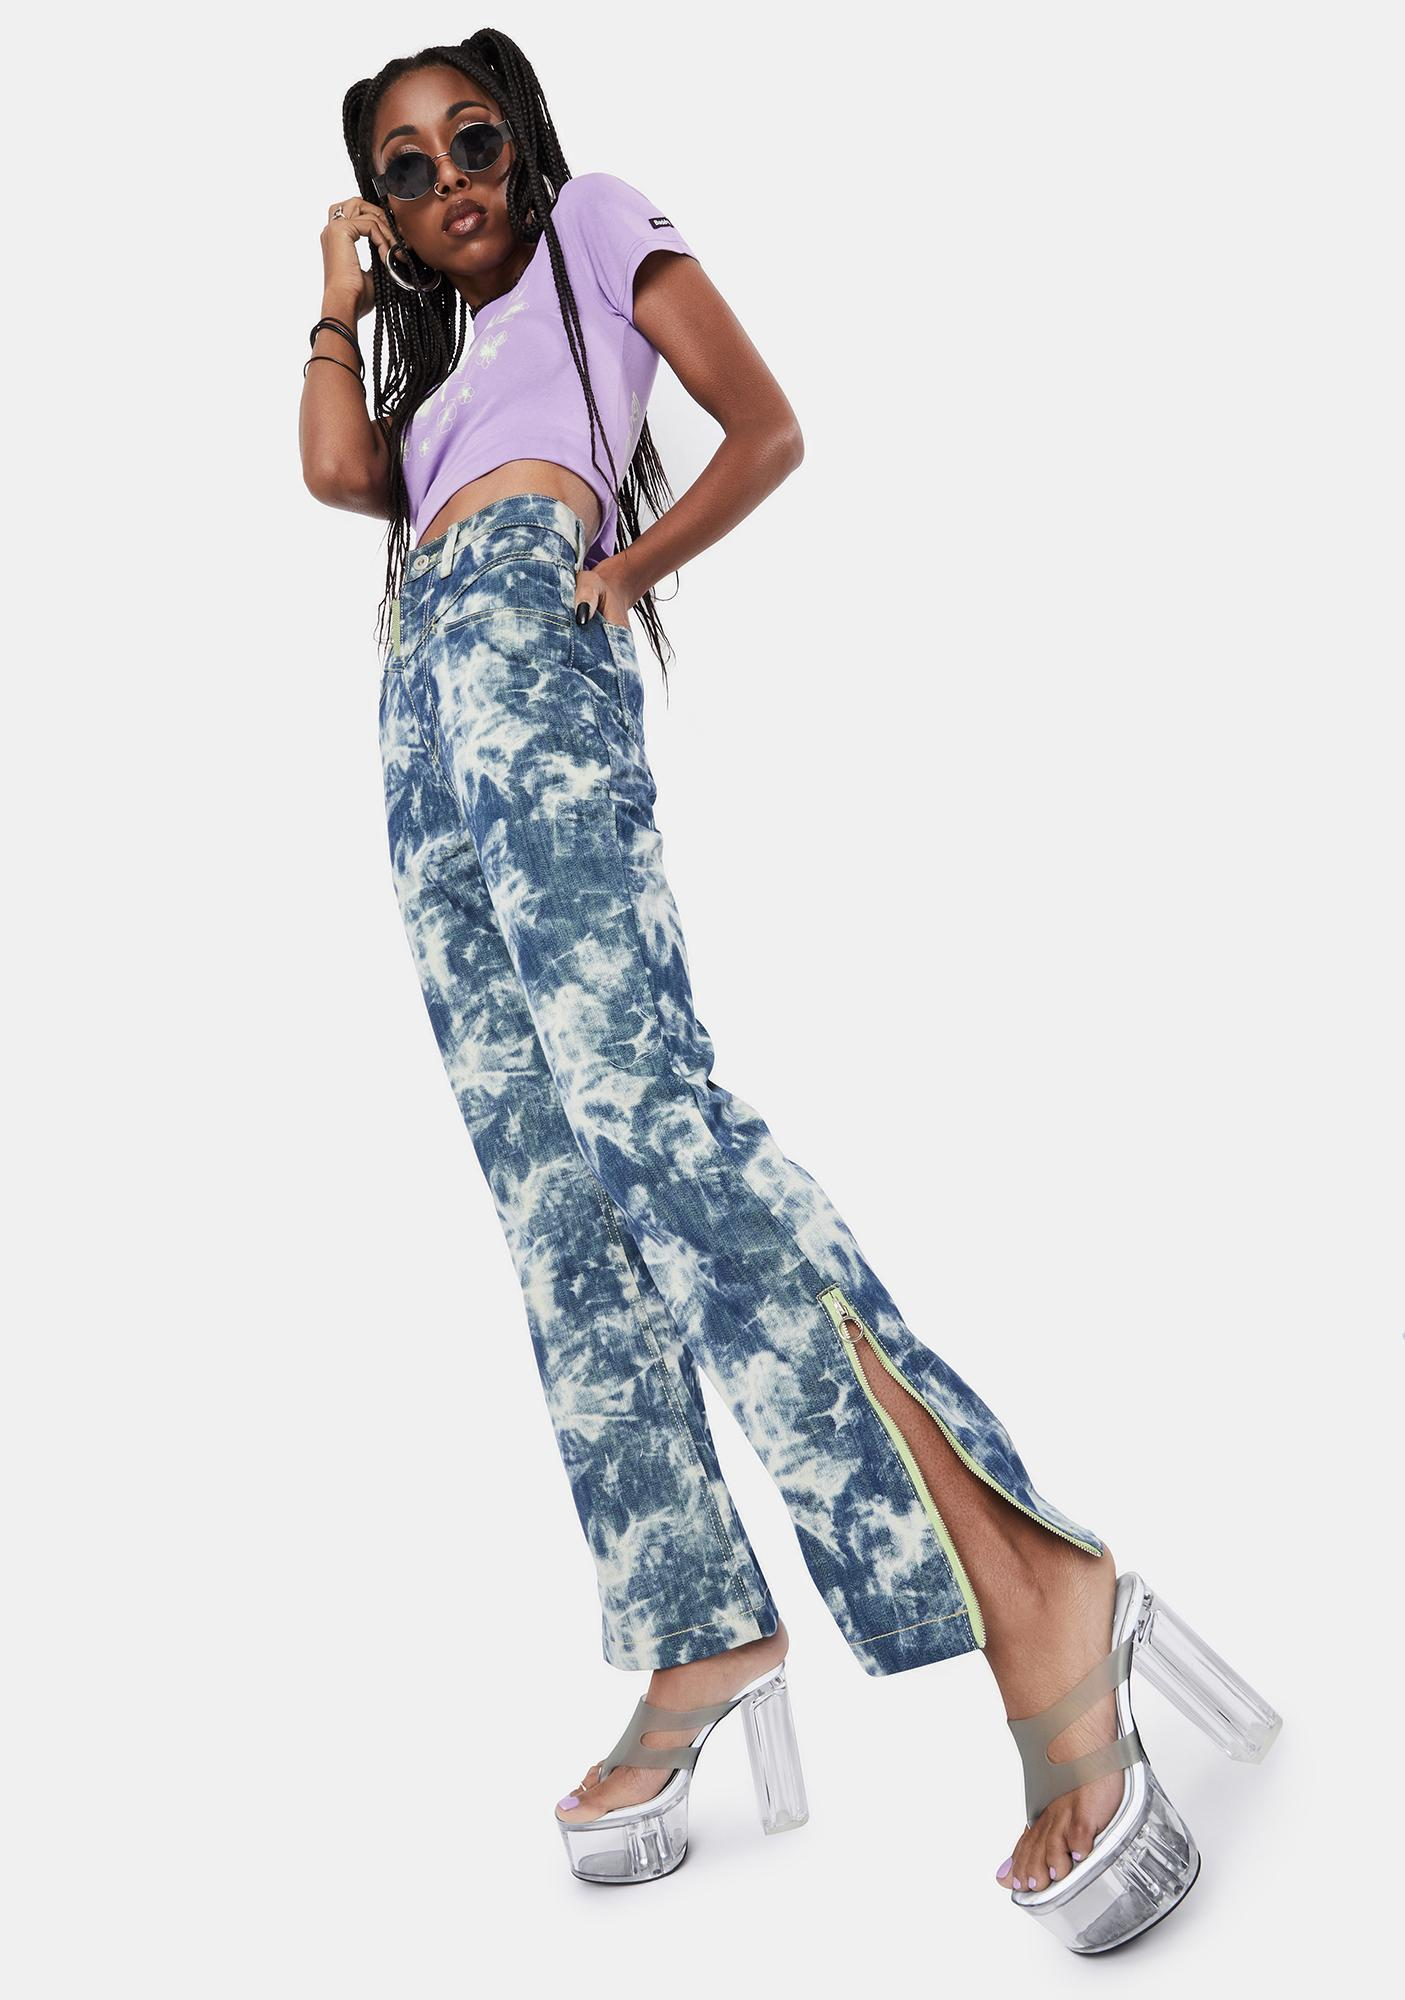 BADEE Contrasted Color Denim Pants